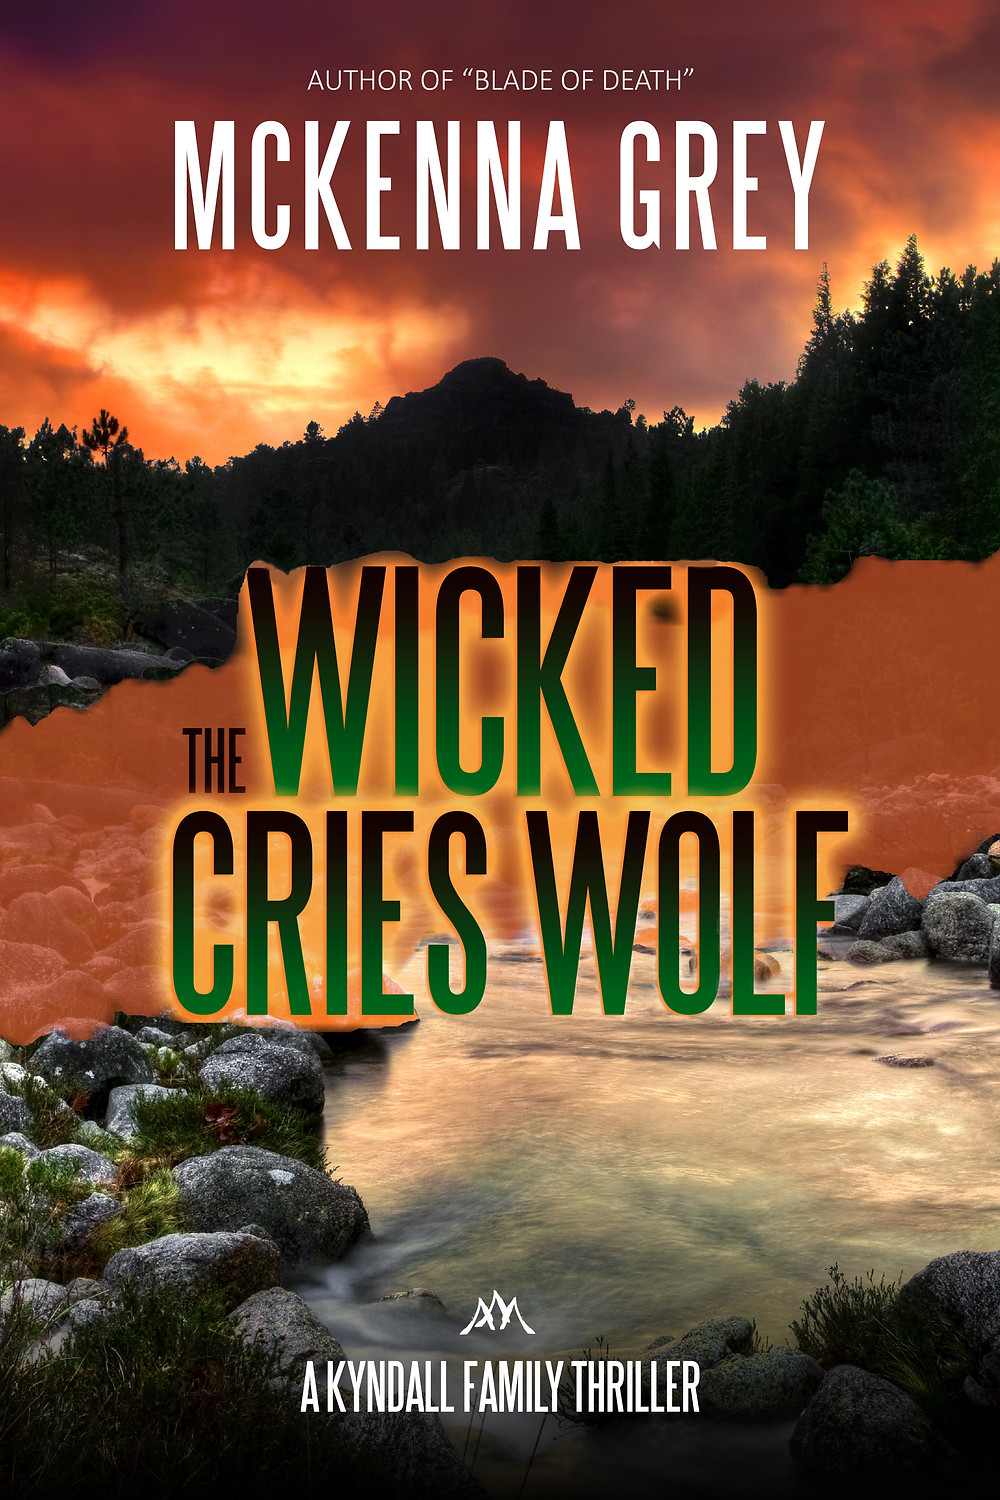 The Wicked Cries Wolf by McKenna Grey